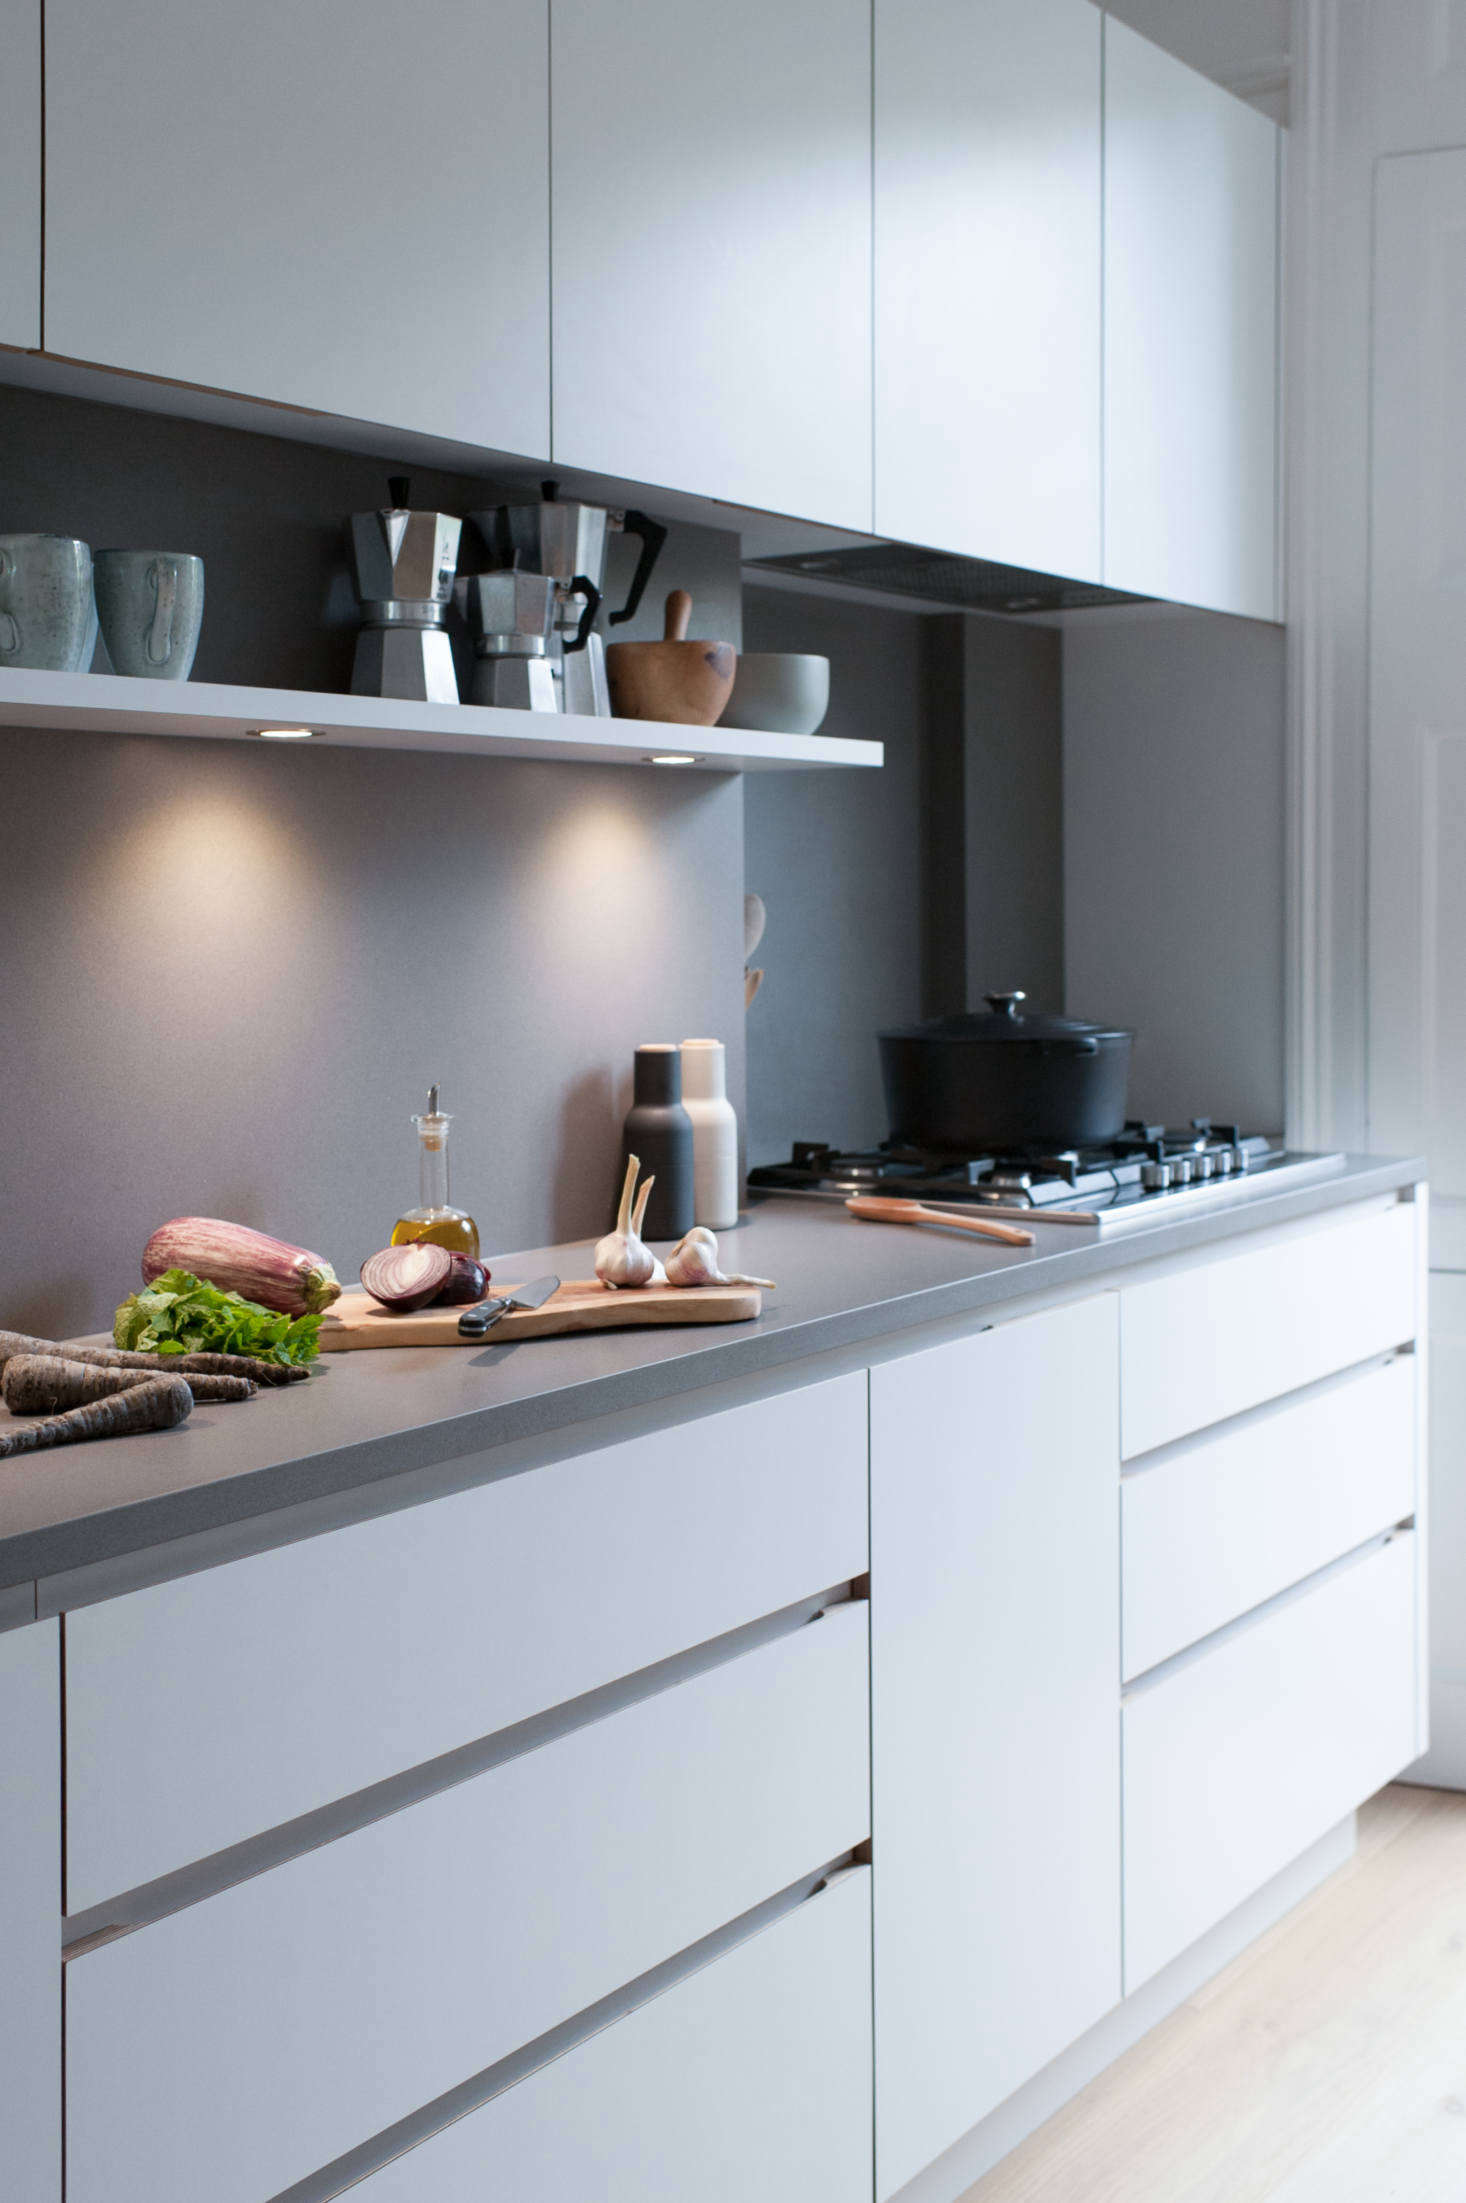 The counters are Silestone in Gris Expo, as are the backsplashes (with a suede finish). The five-burner cooktop is by Siemens and the under-cabinet extractor is the Weston Cache 700. Note the integrated under-shelf lighting: for tips on recessed lighting, read our Expert Advice from Architect Oliver Freundlich.